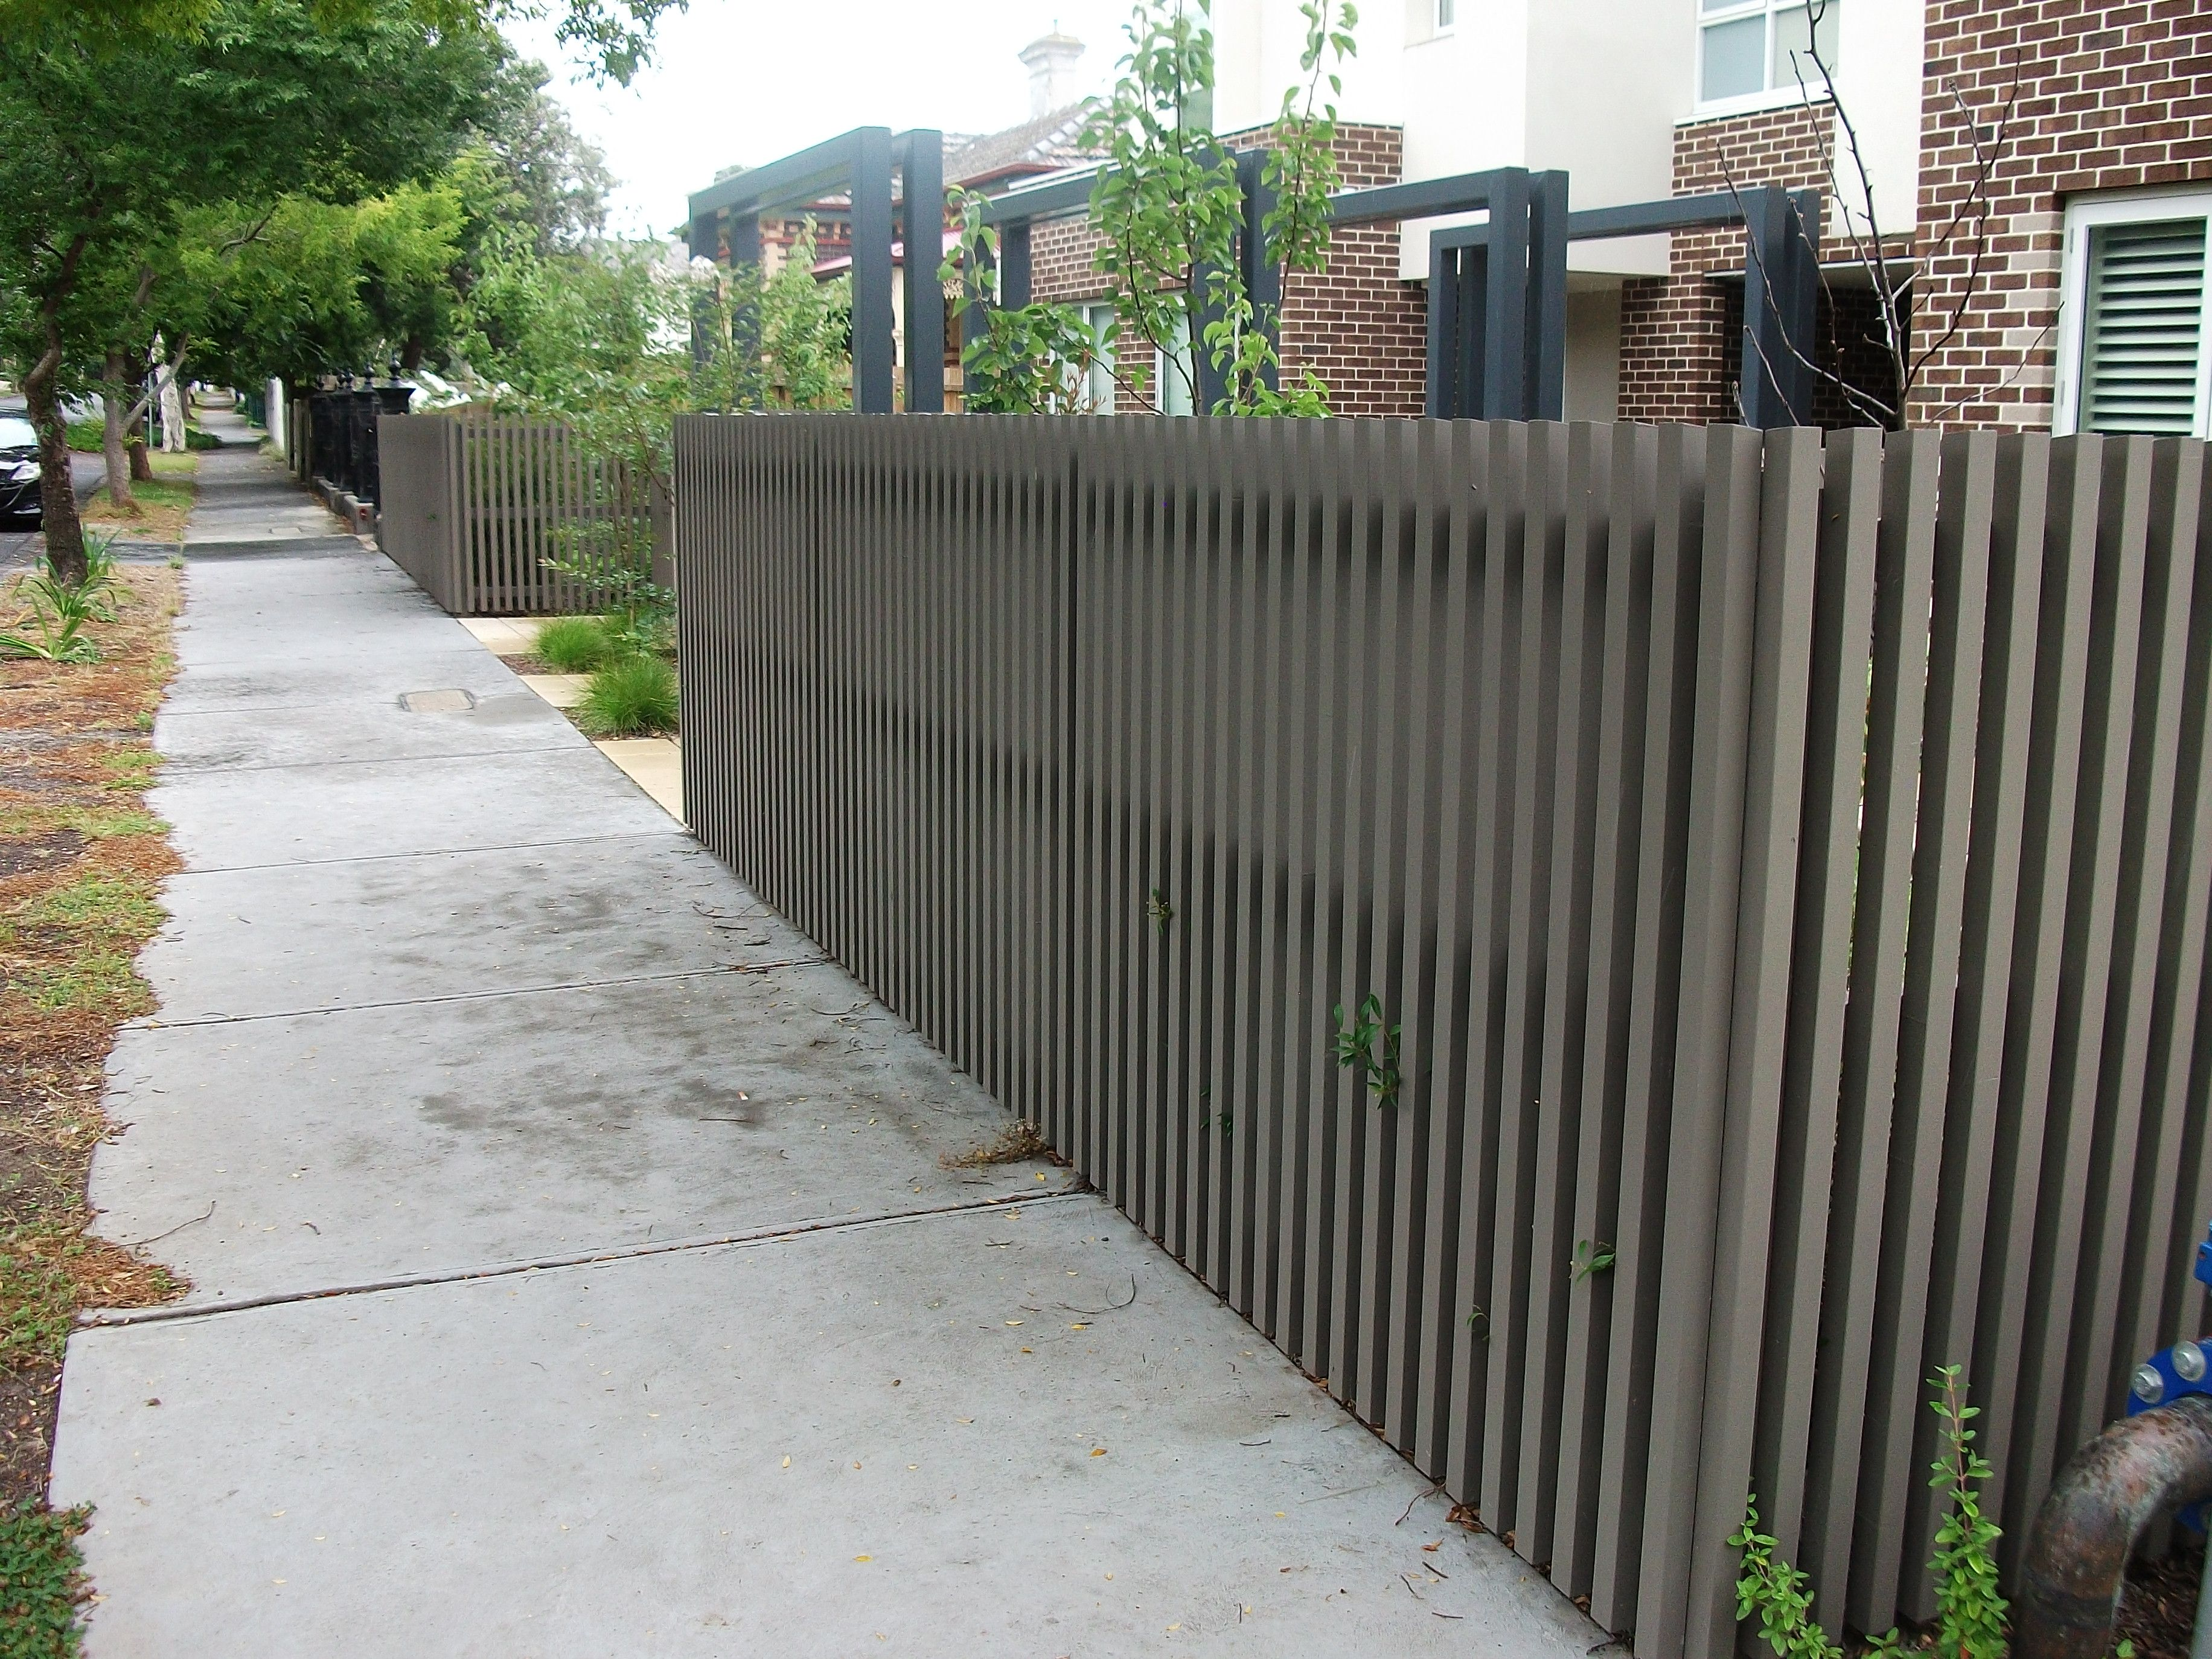 1000+ images about fence ideas on Pinterest